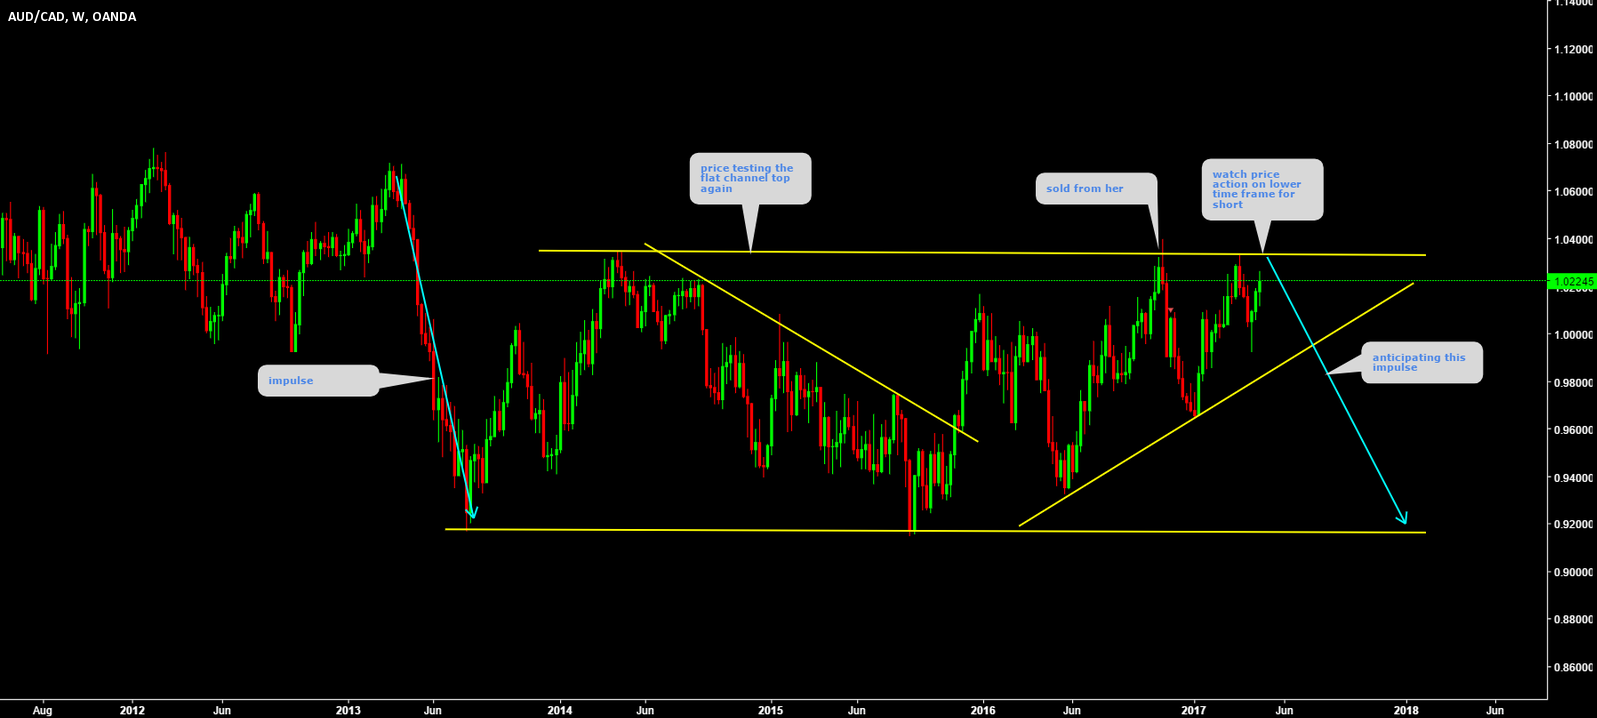 AUDCAD testing the weekly top again